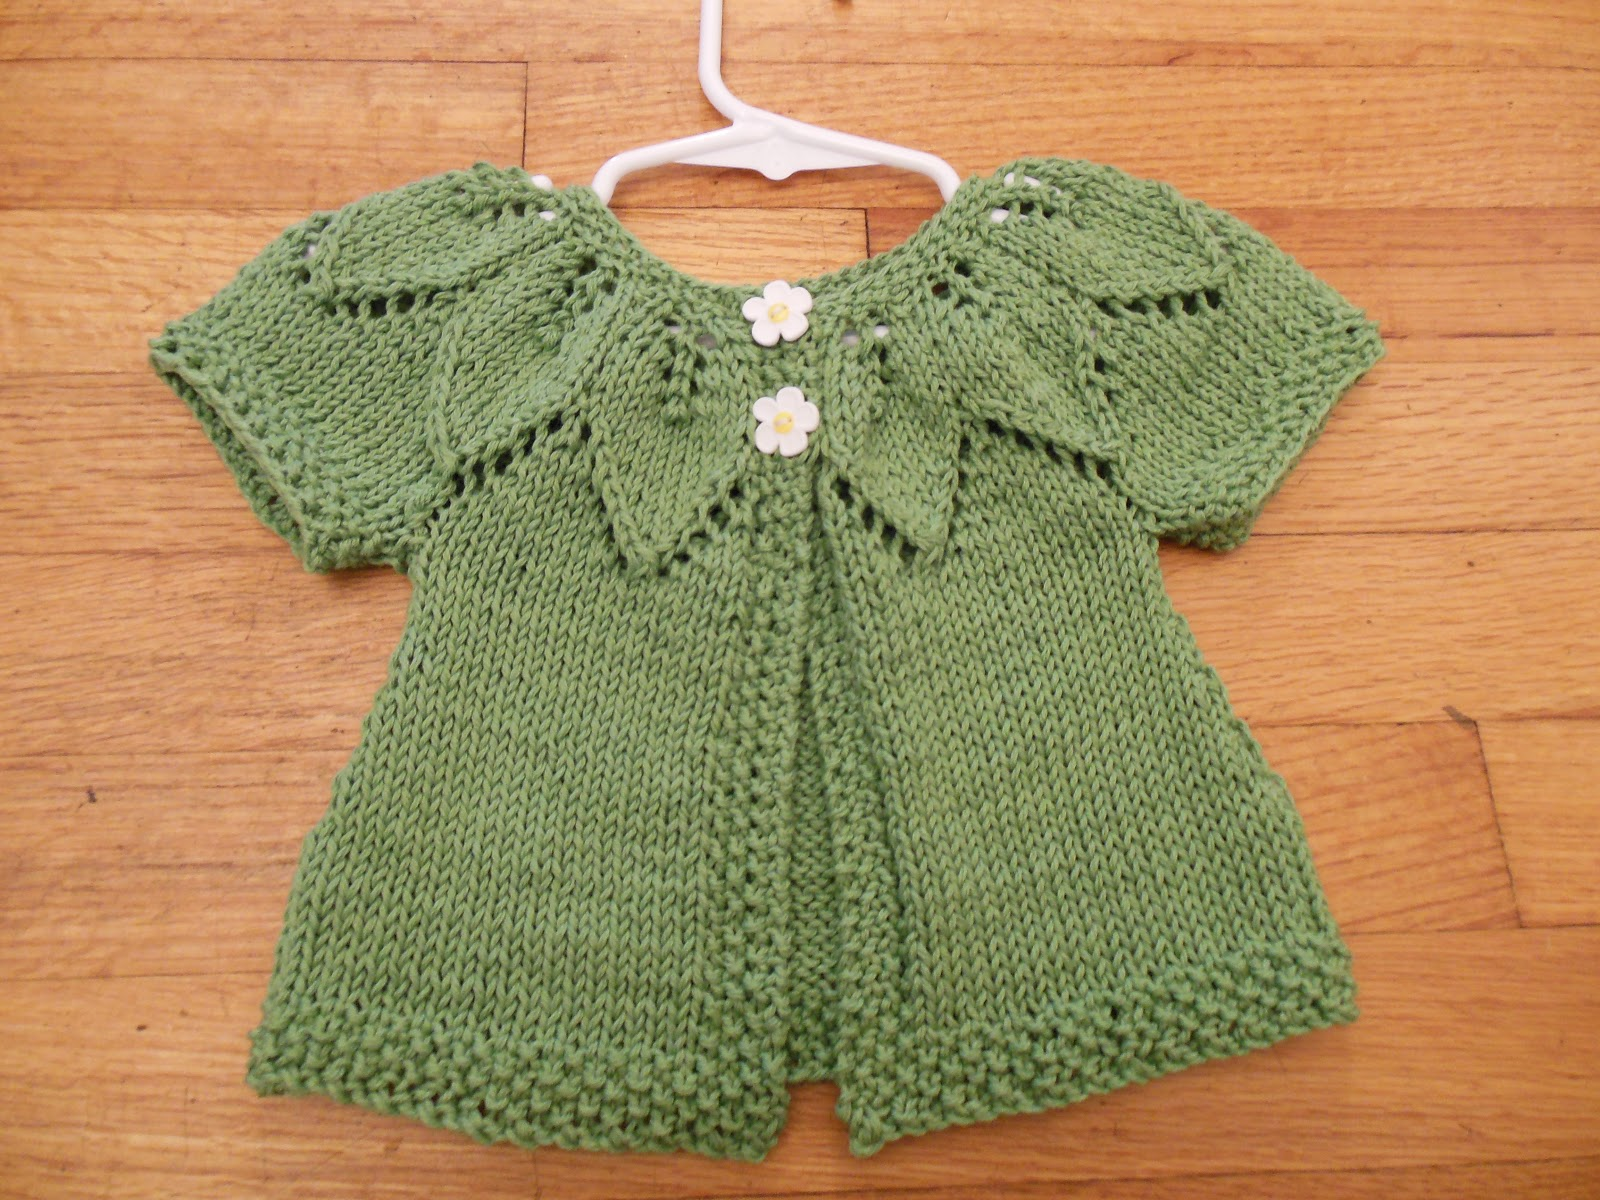 Free Baby Sweater Knitting Patterns : Natural State Knitting: Baby Leaf Sweater